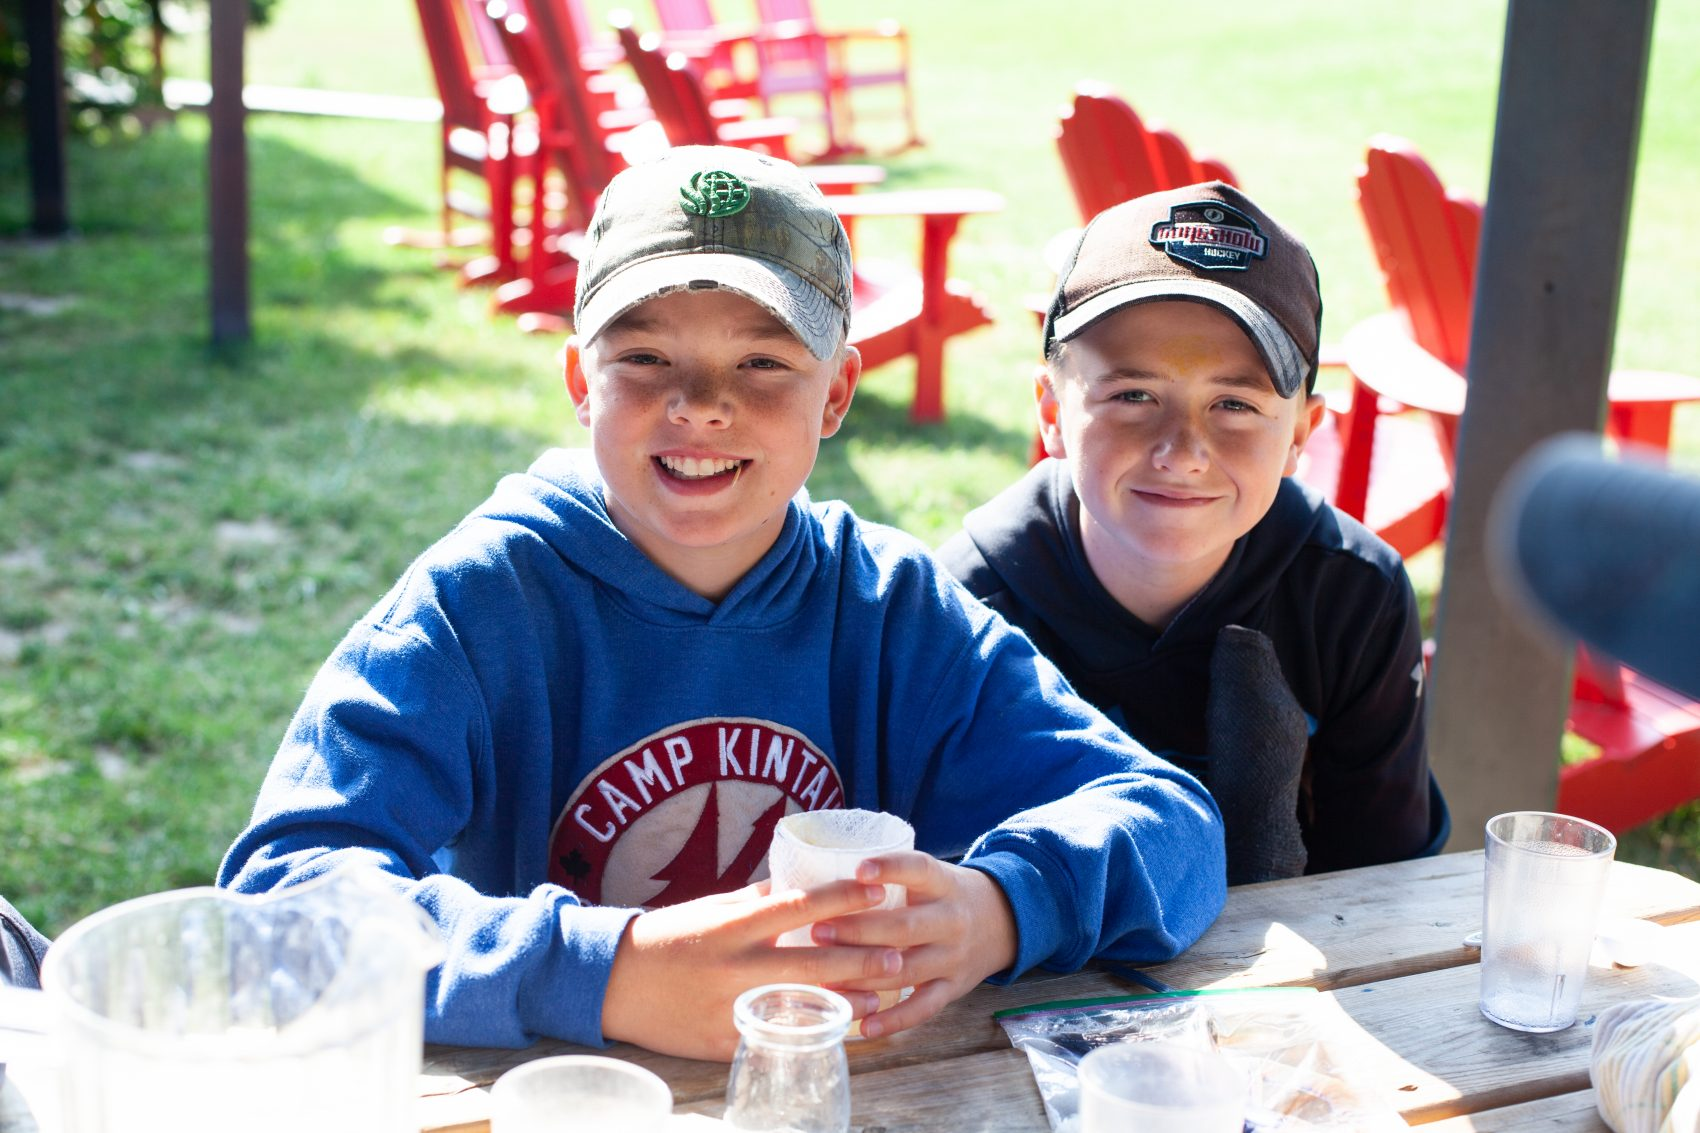 Two male campers sit smiling at a picnic table with their materials needed for banana DNA extraction.